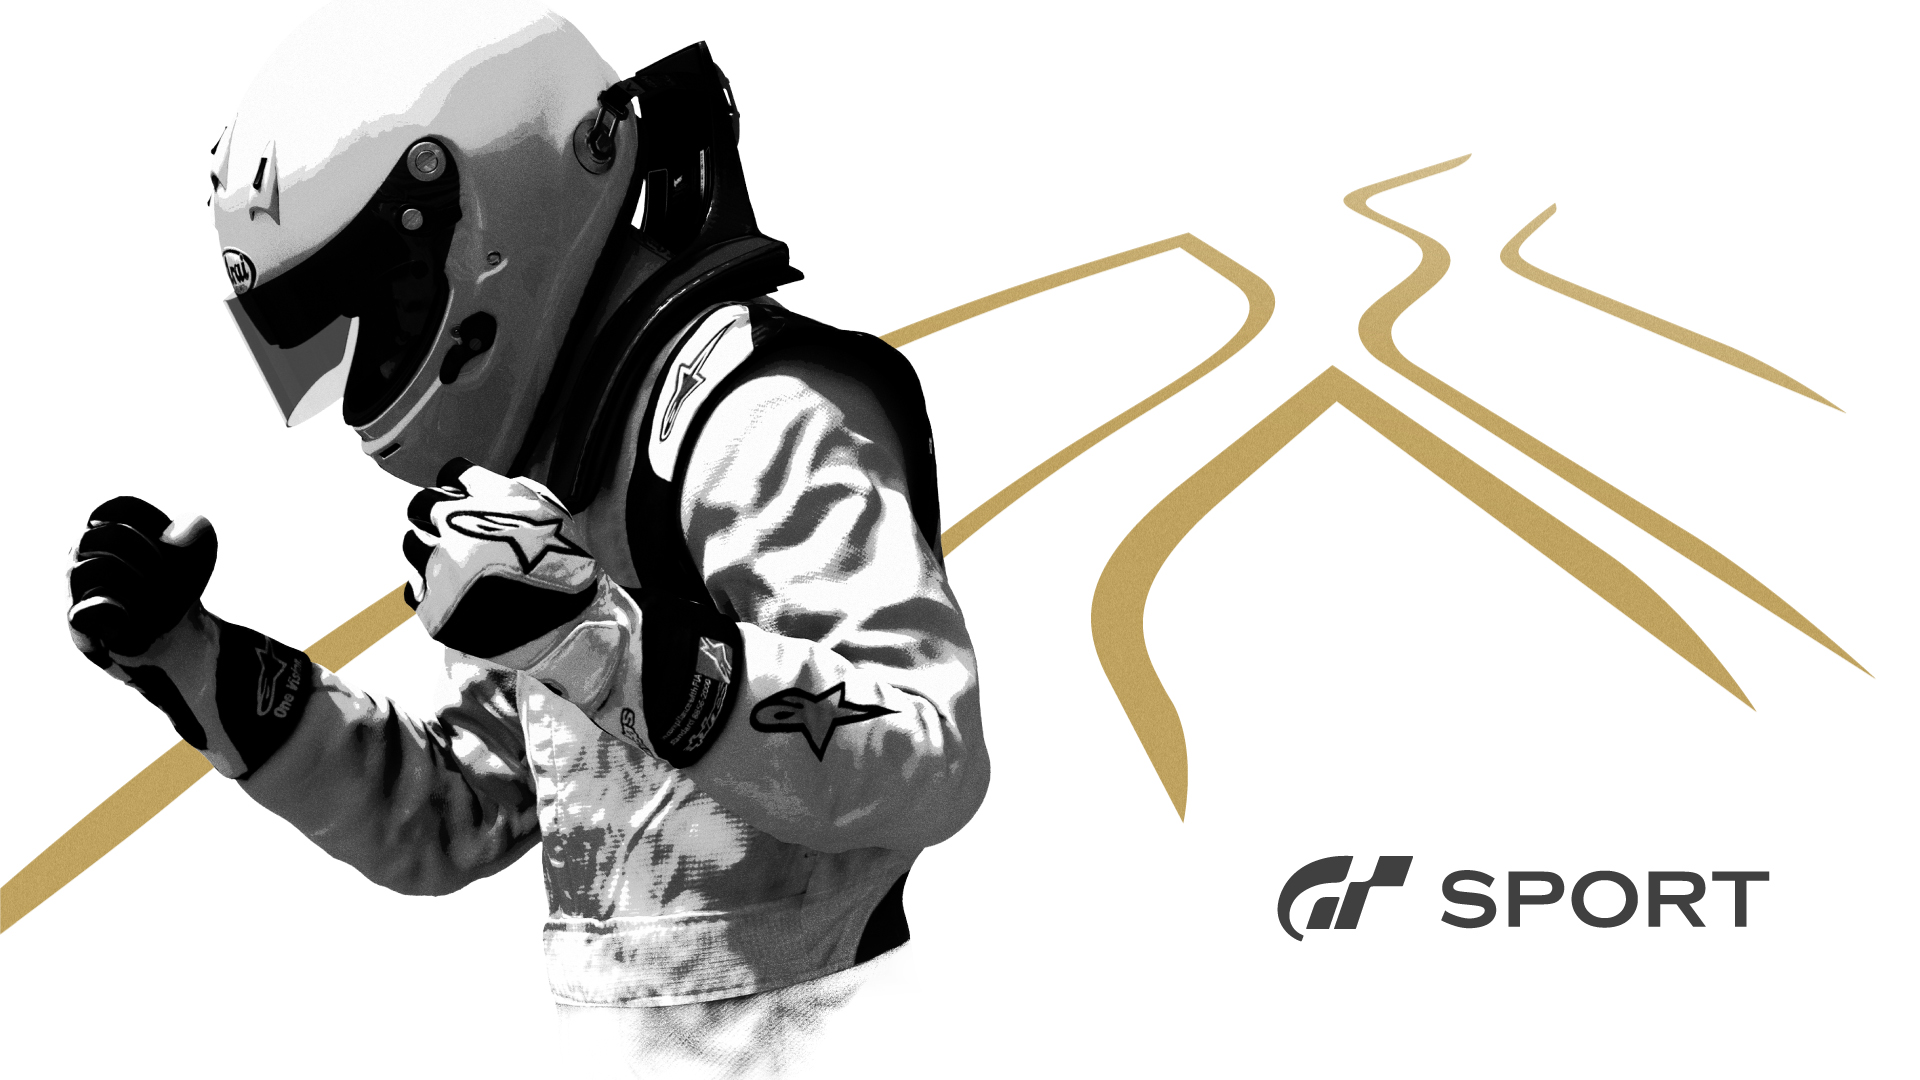 gran turismo sport wallpapers: 55 Gran Turismo Sport HD Wallpapers